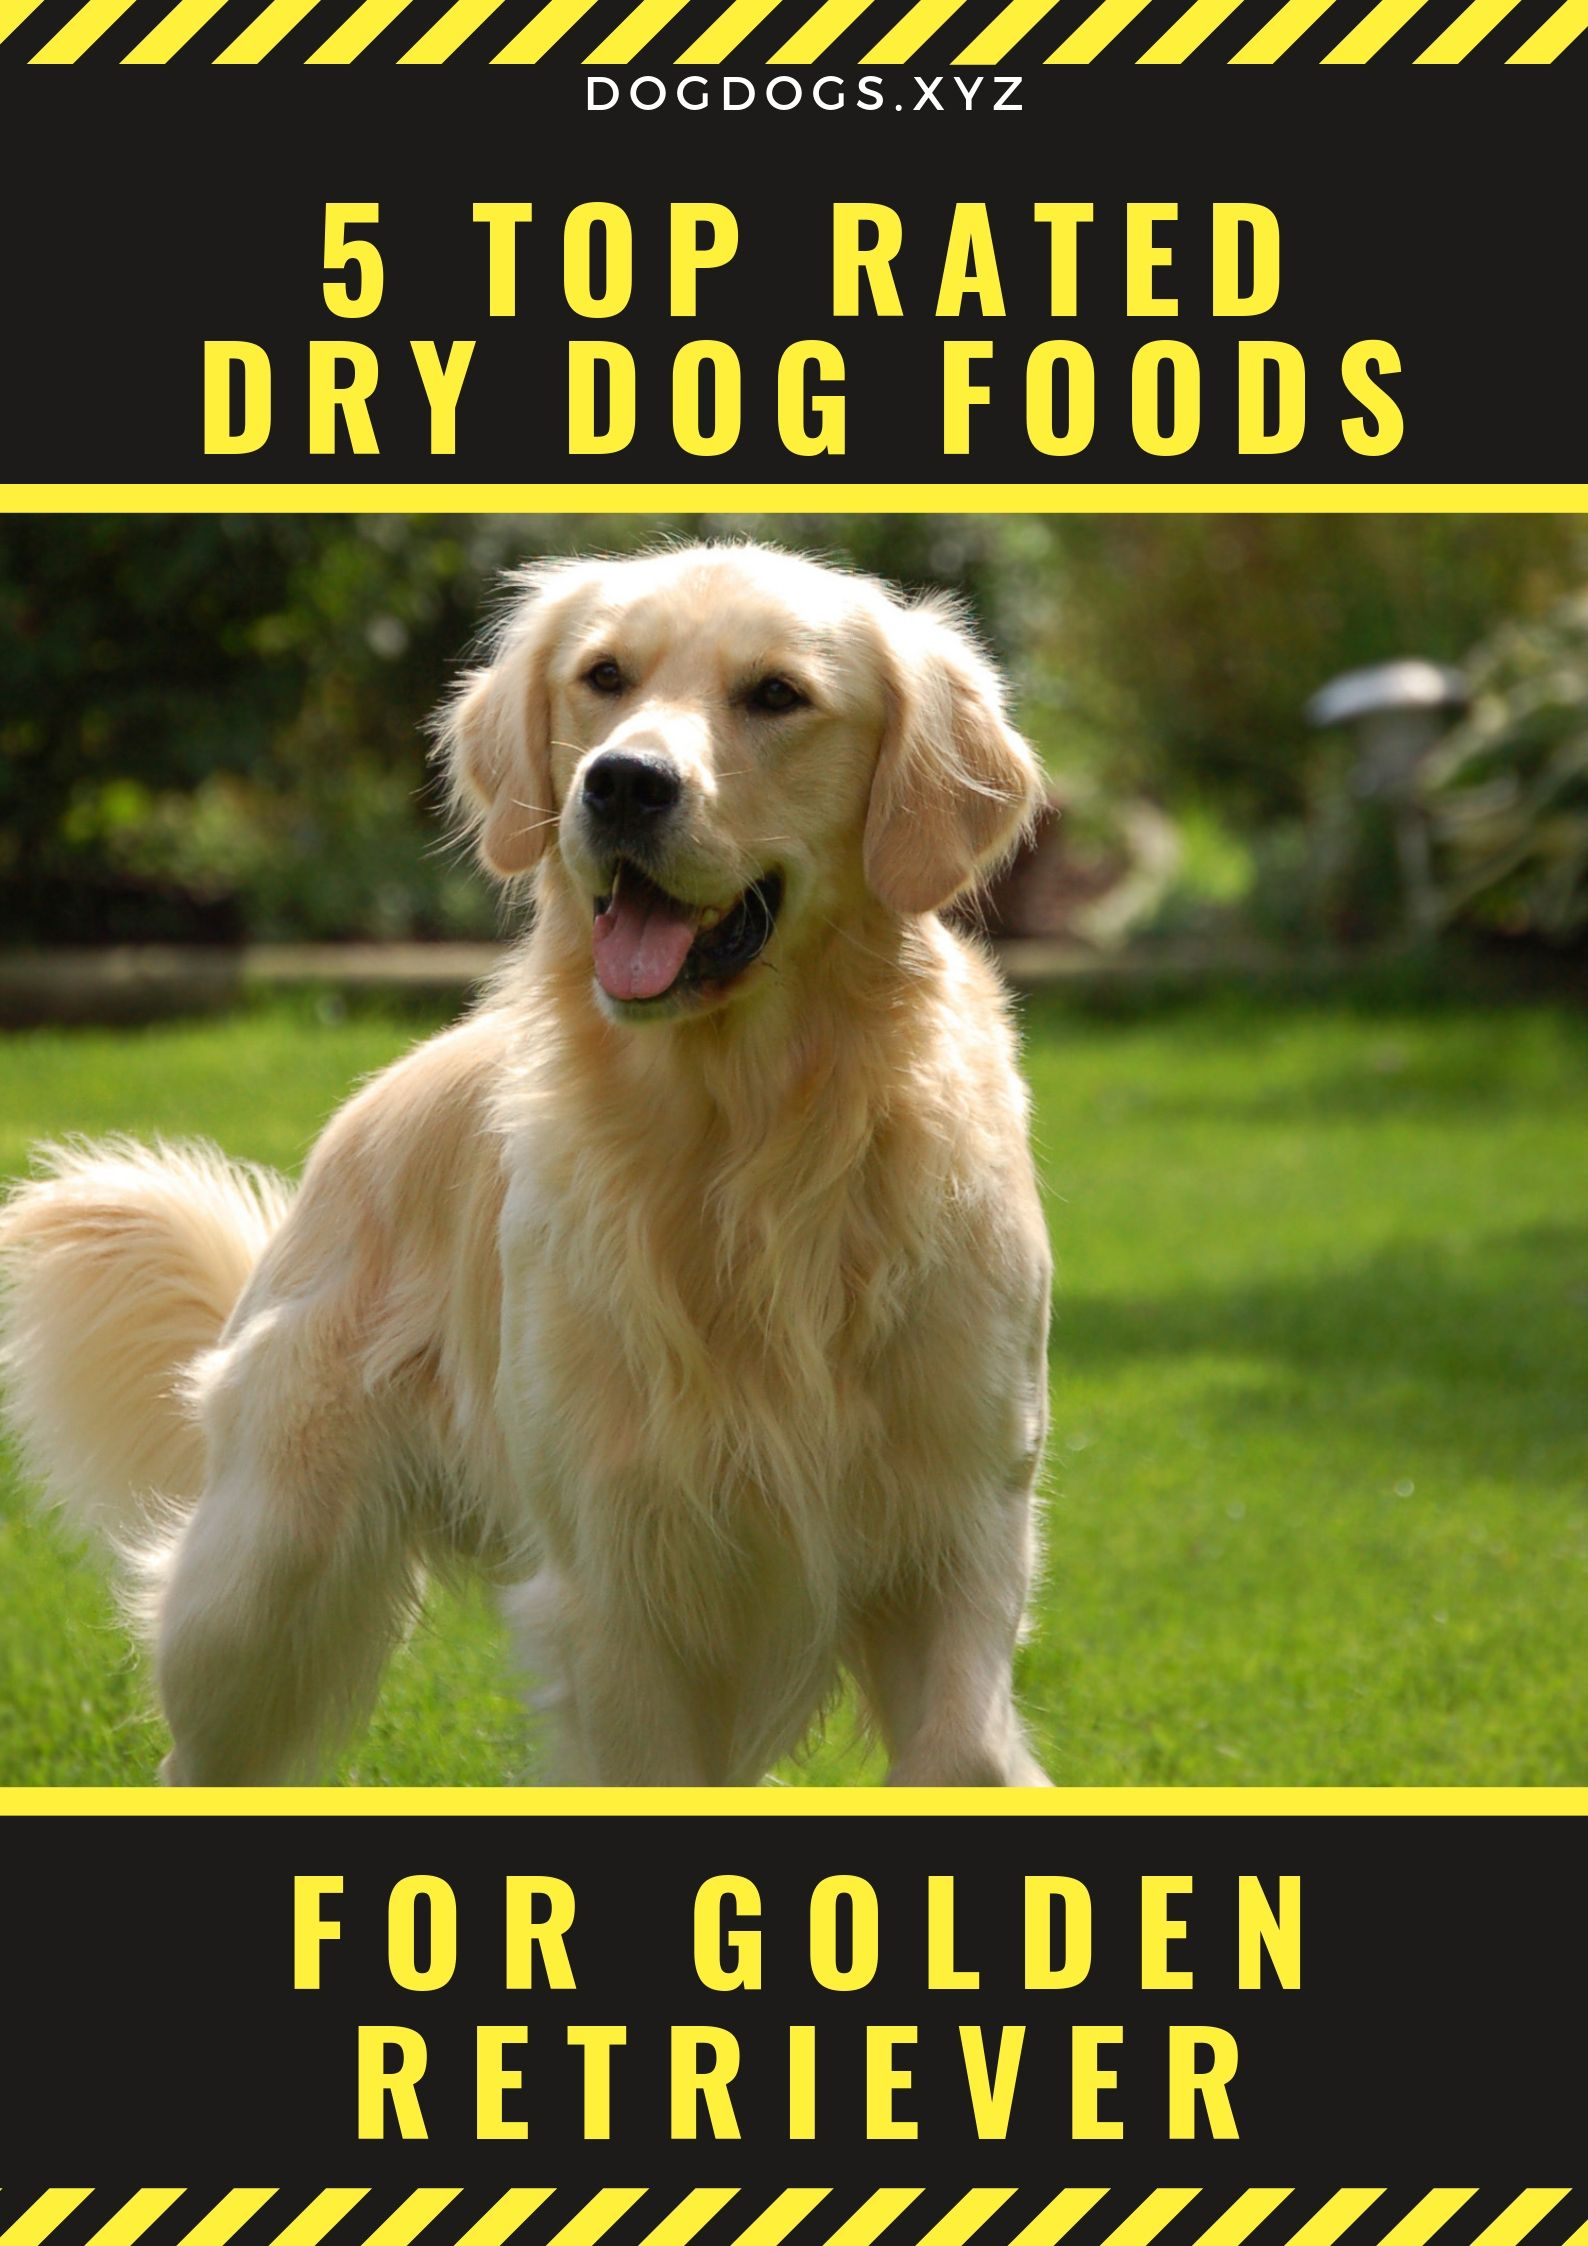 Kibble Or Dry Dog Food Makes It Easier For Golden Retriever Owner